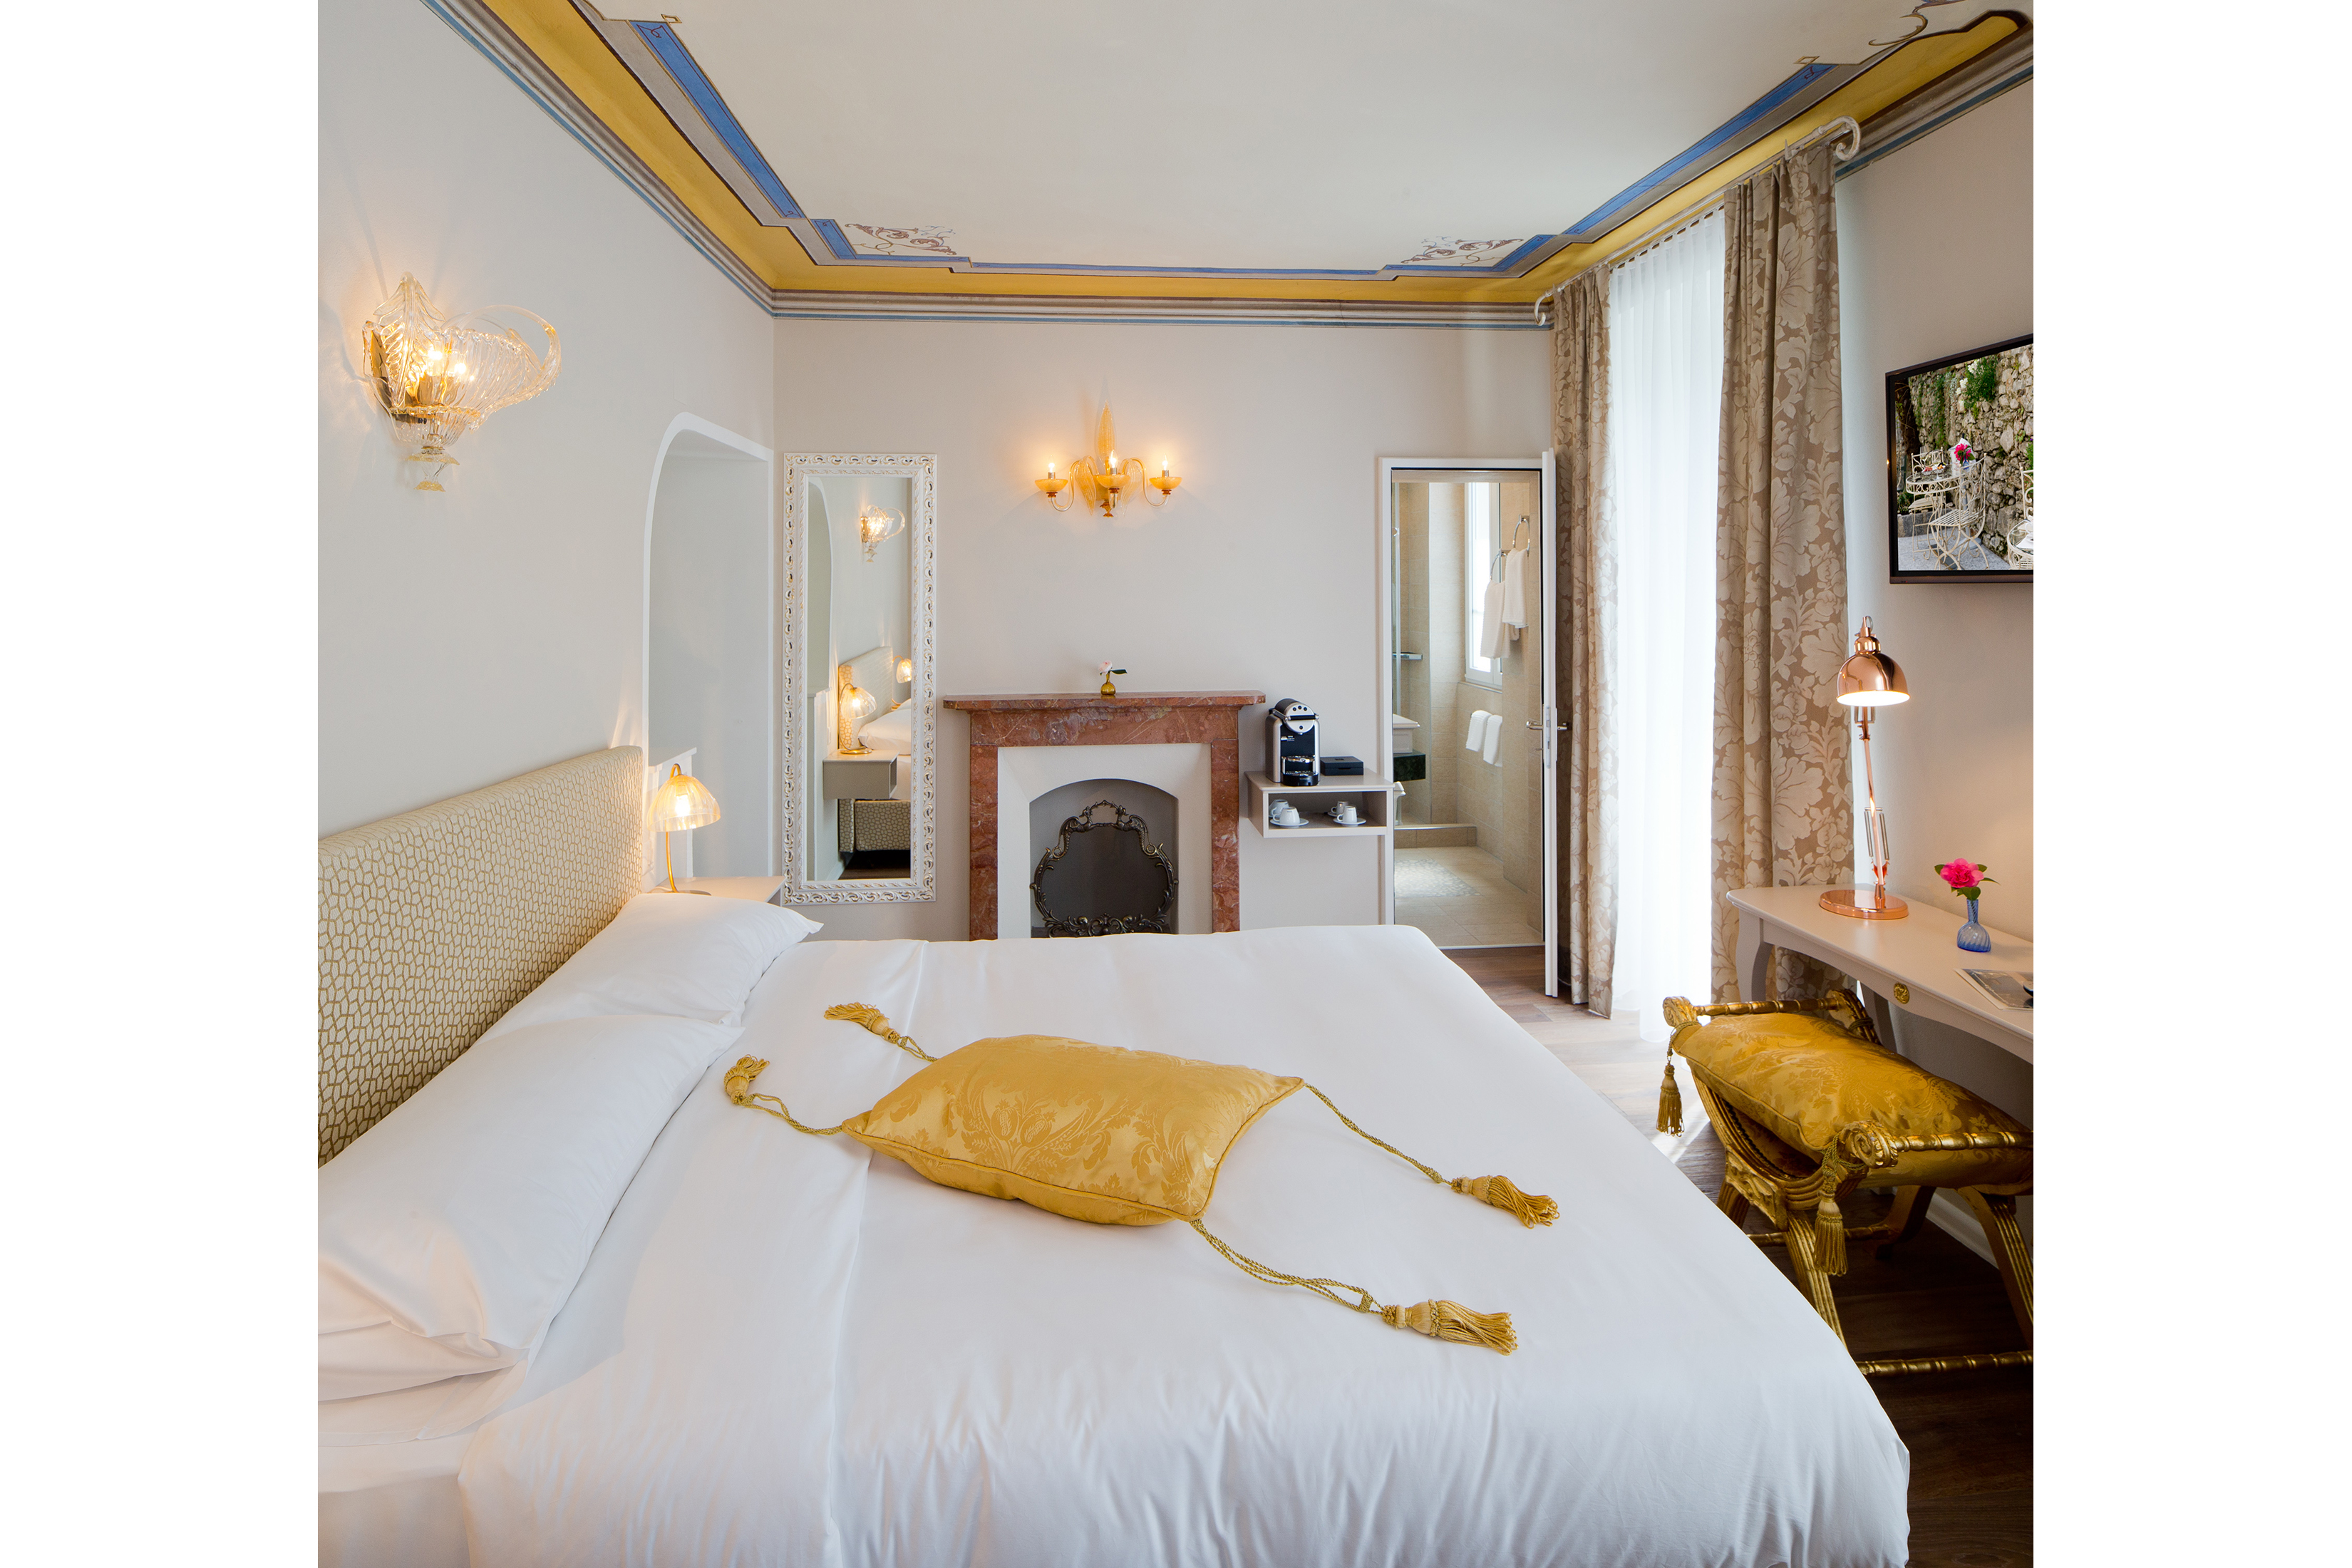 Albergo Villa Sarnia - rooms lookup 2